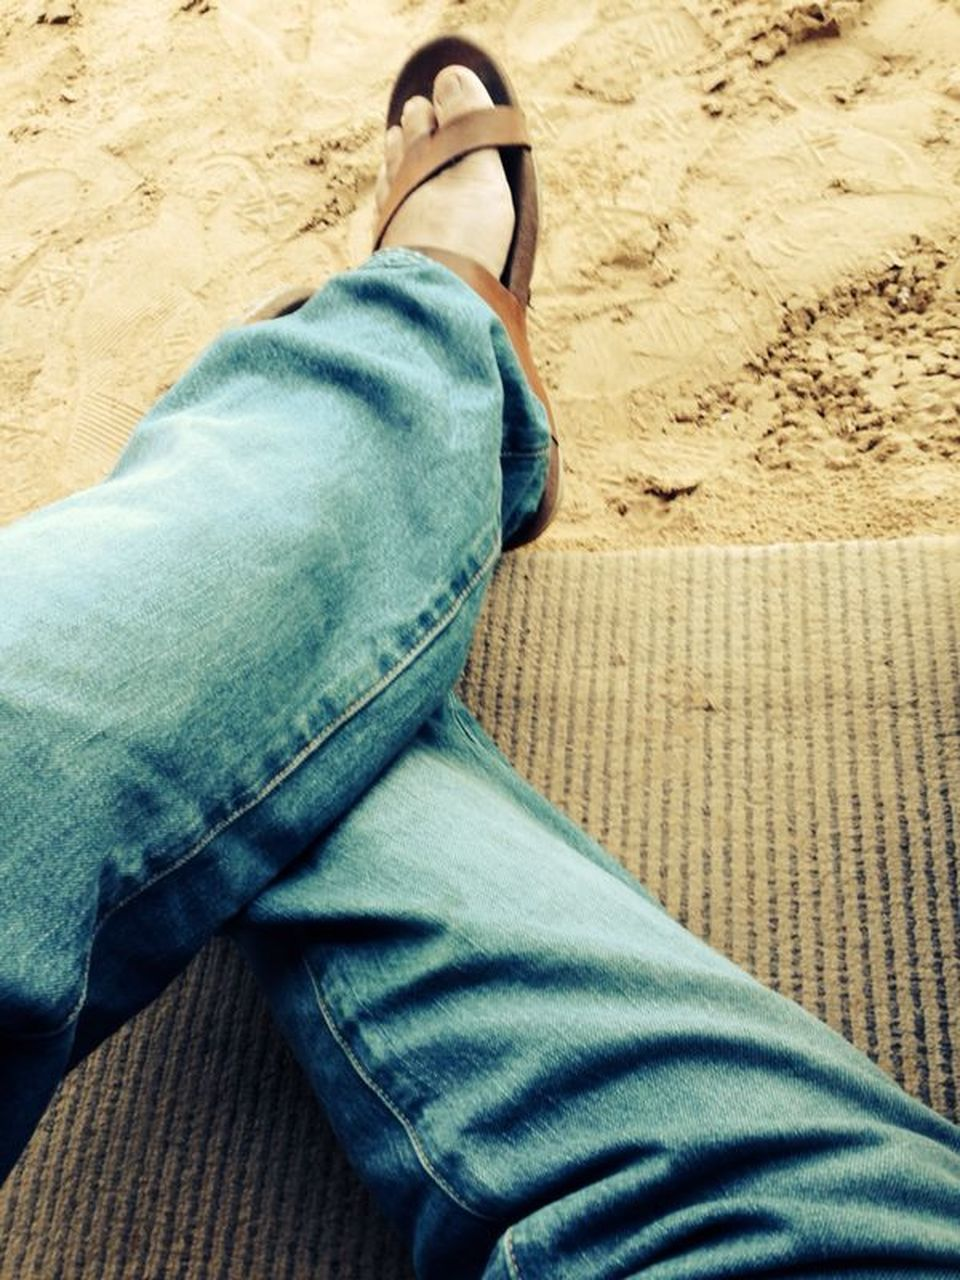 low section, human leg, jeans, one person, real people, personal perspective, casual clothing, human body part, sand, leisure activity, high angle view, shoe, lifestyles, relaxation, day, men, sitting, indoors, beach, close-up, adult, people